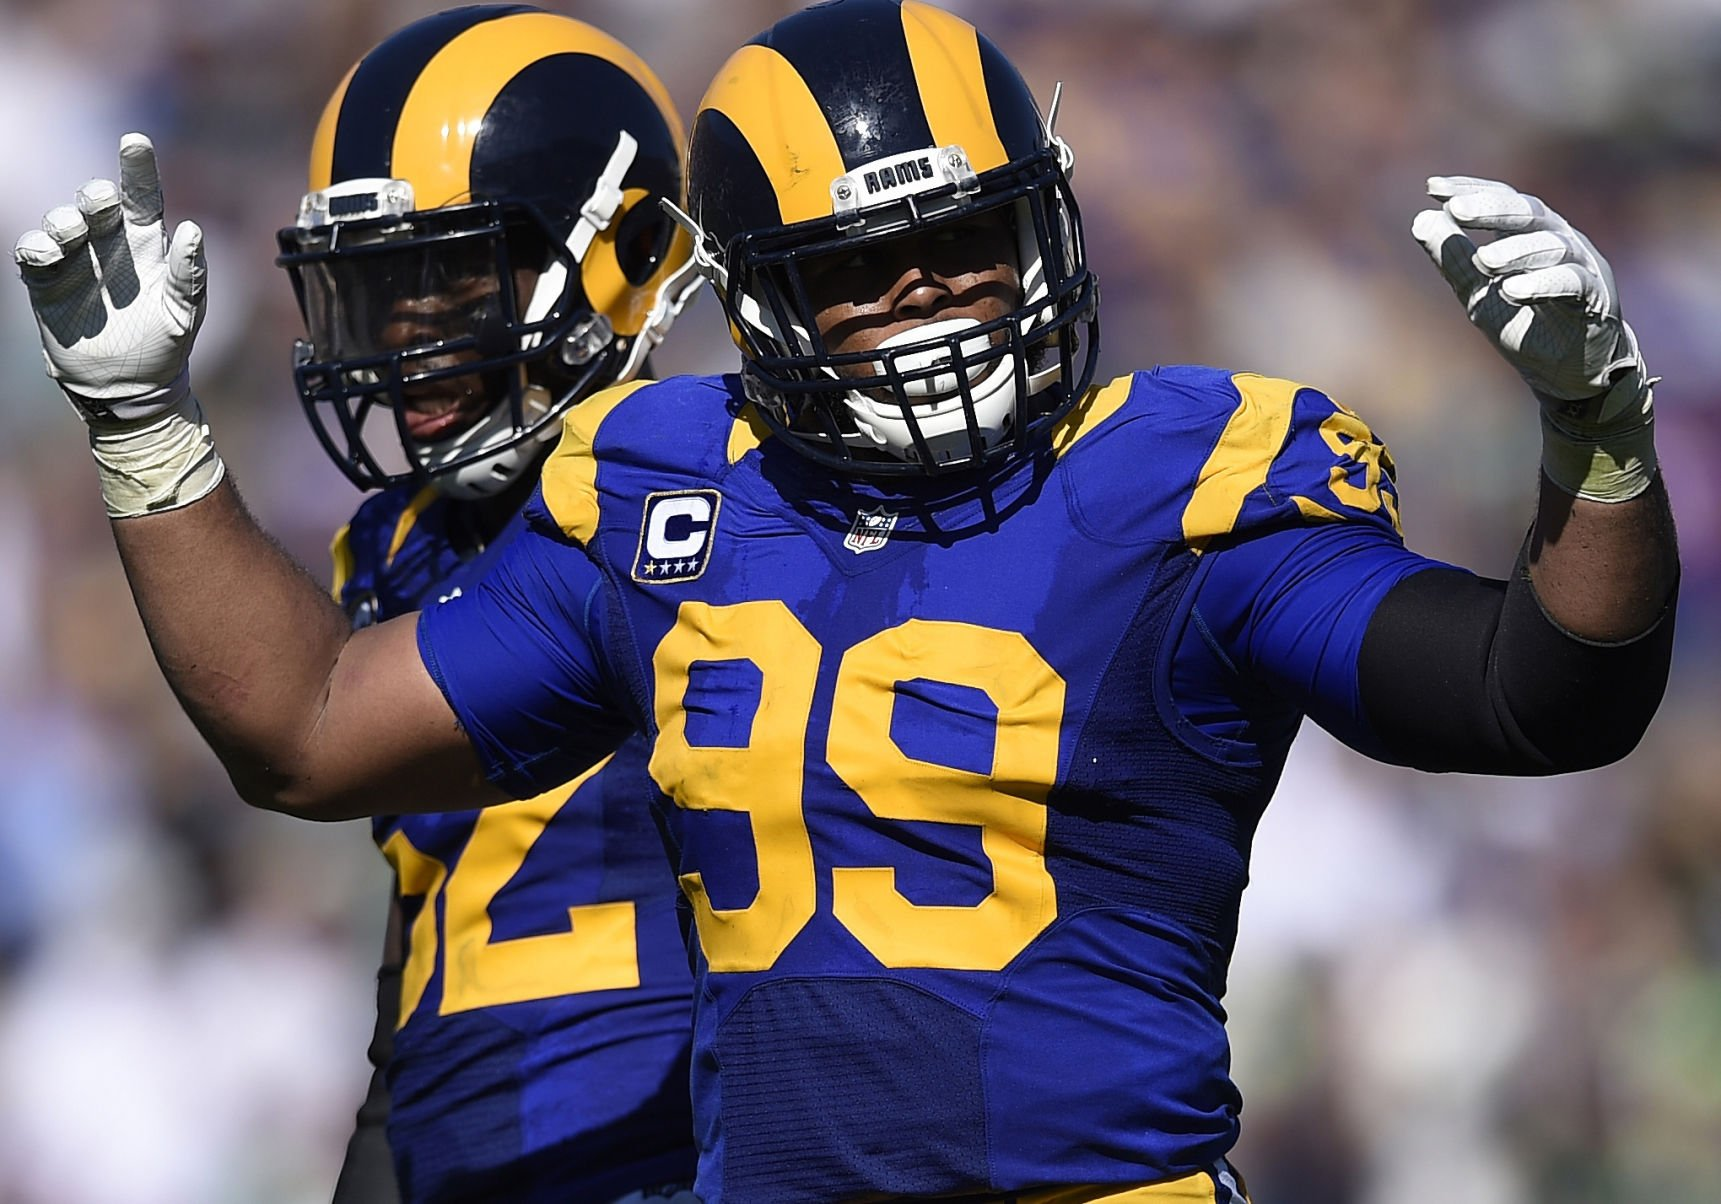 Aaron Donald has ended his holdout and cleared physical with LA